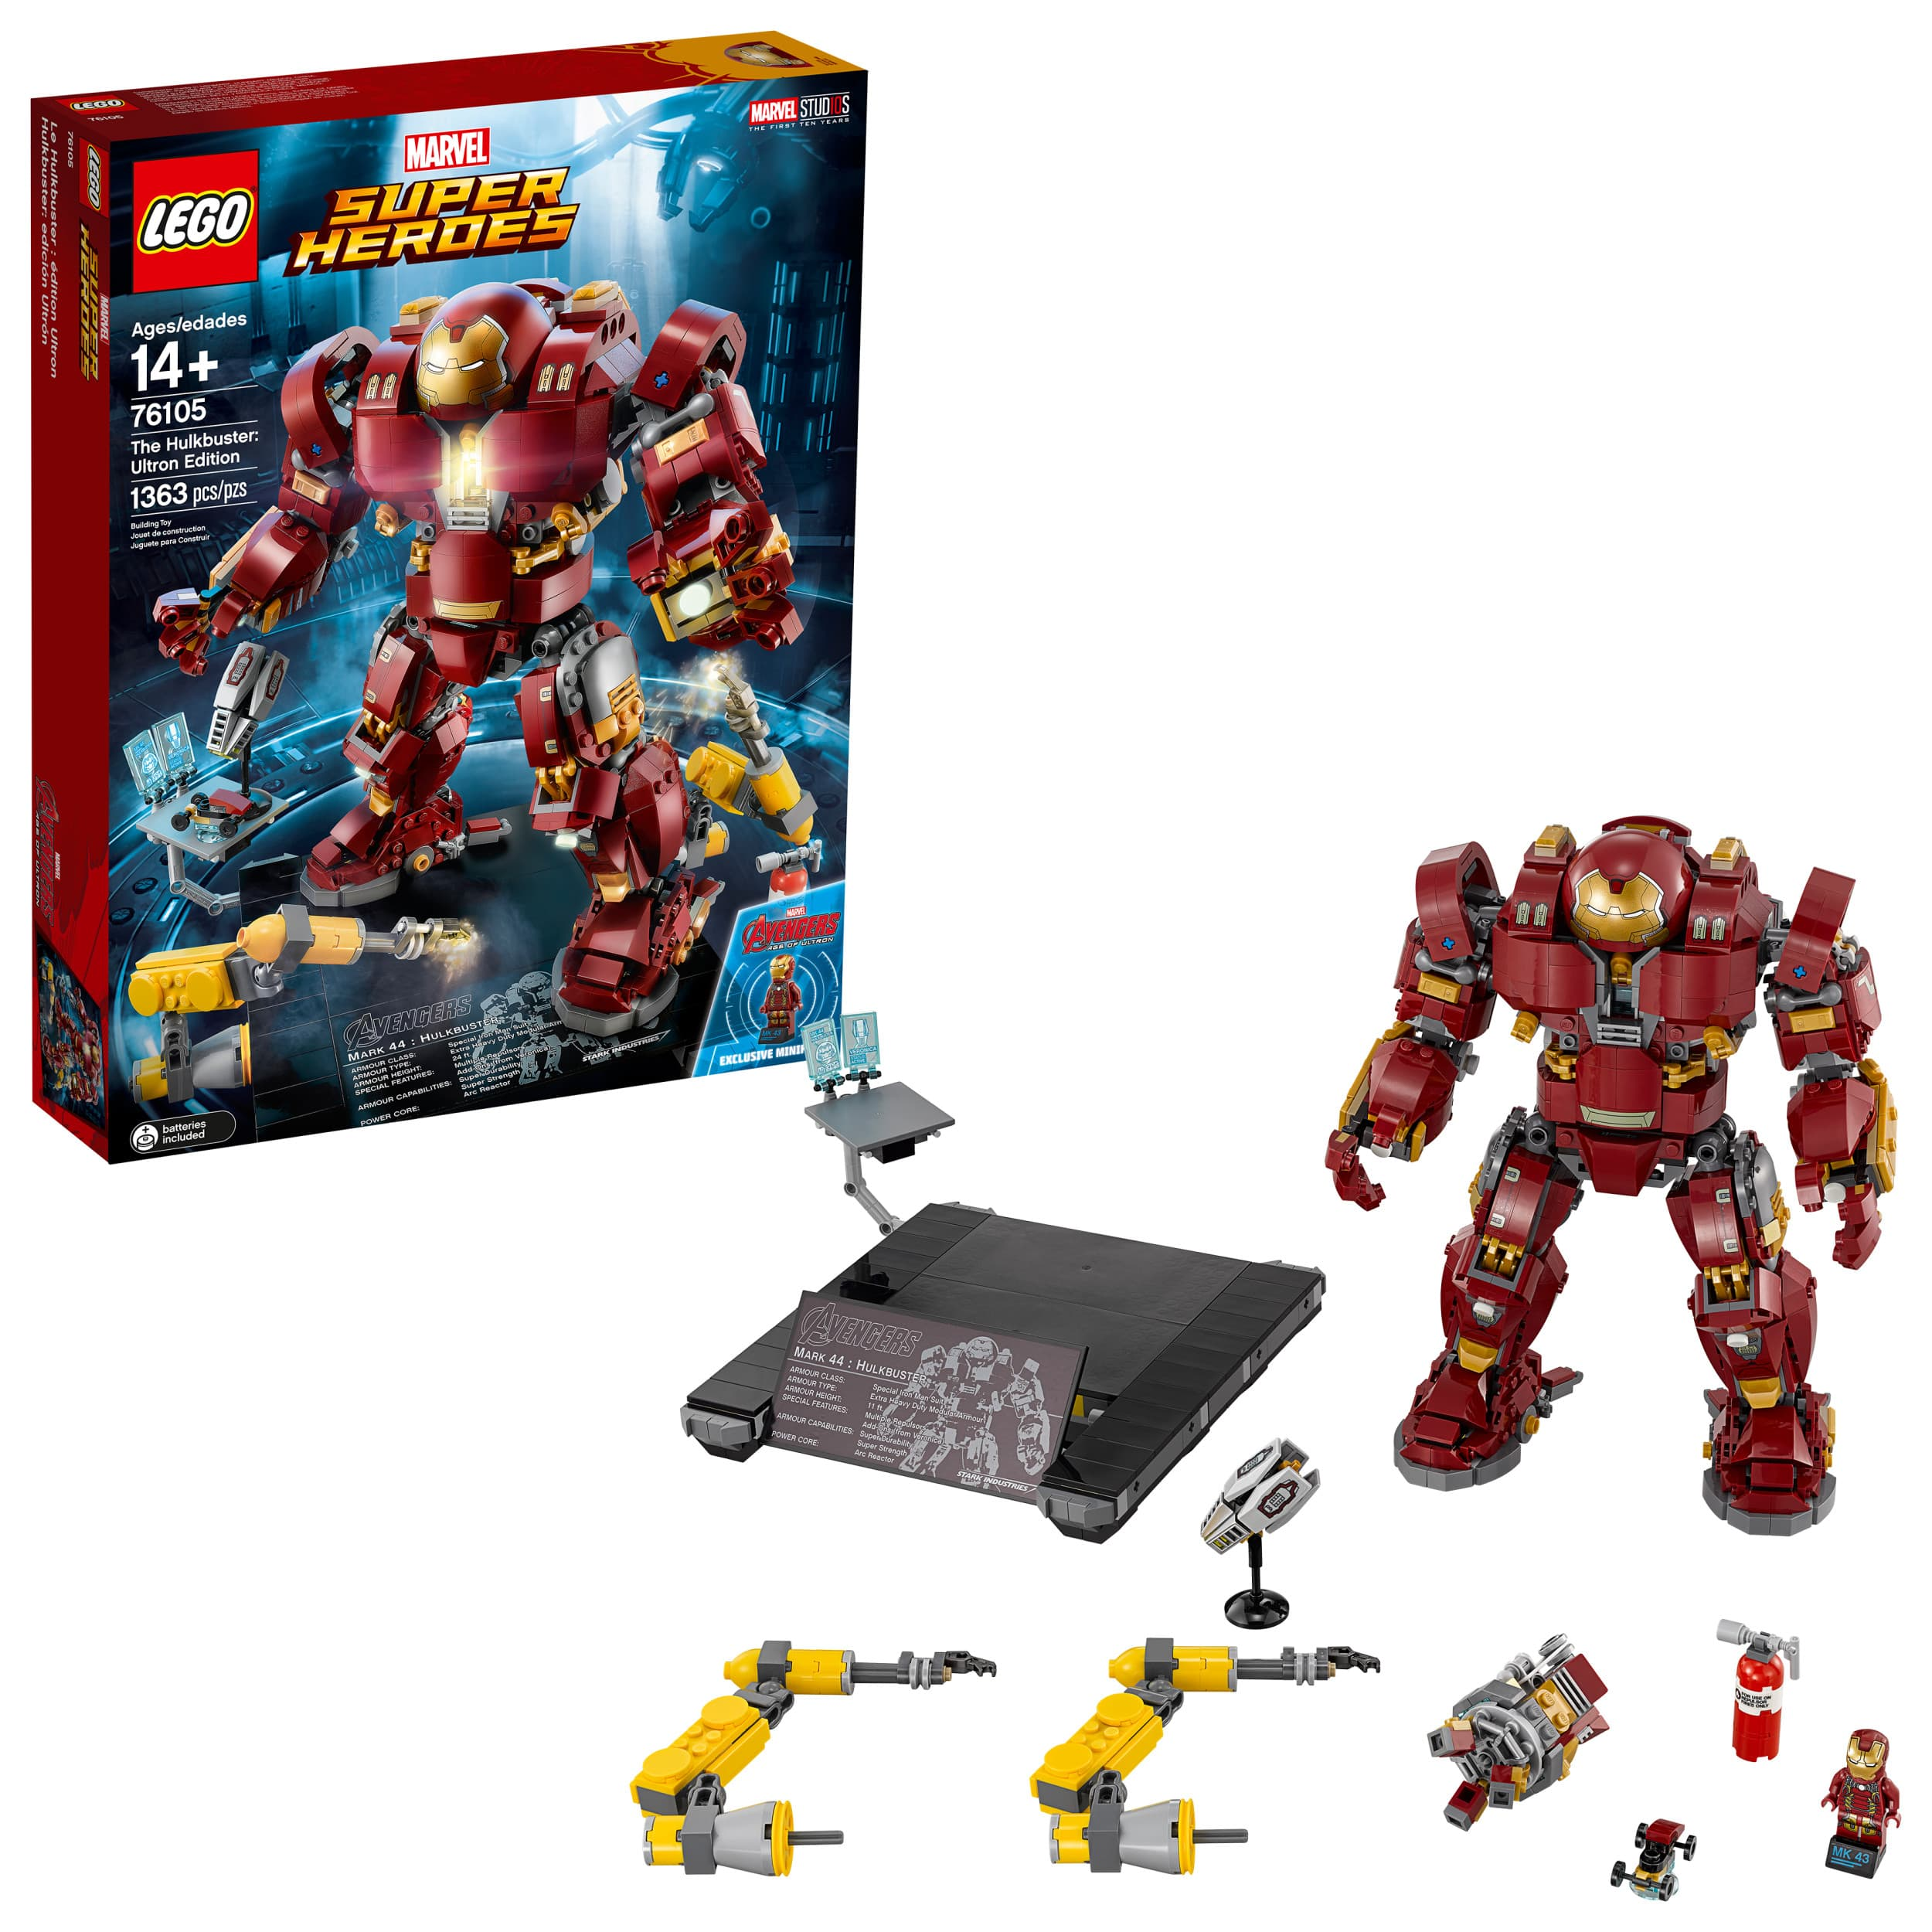 LEGO Super Heroes The Hulkbuster: Ultron Edition 76105 (1363 pcs) - $79.99